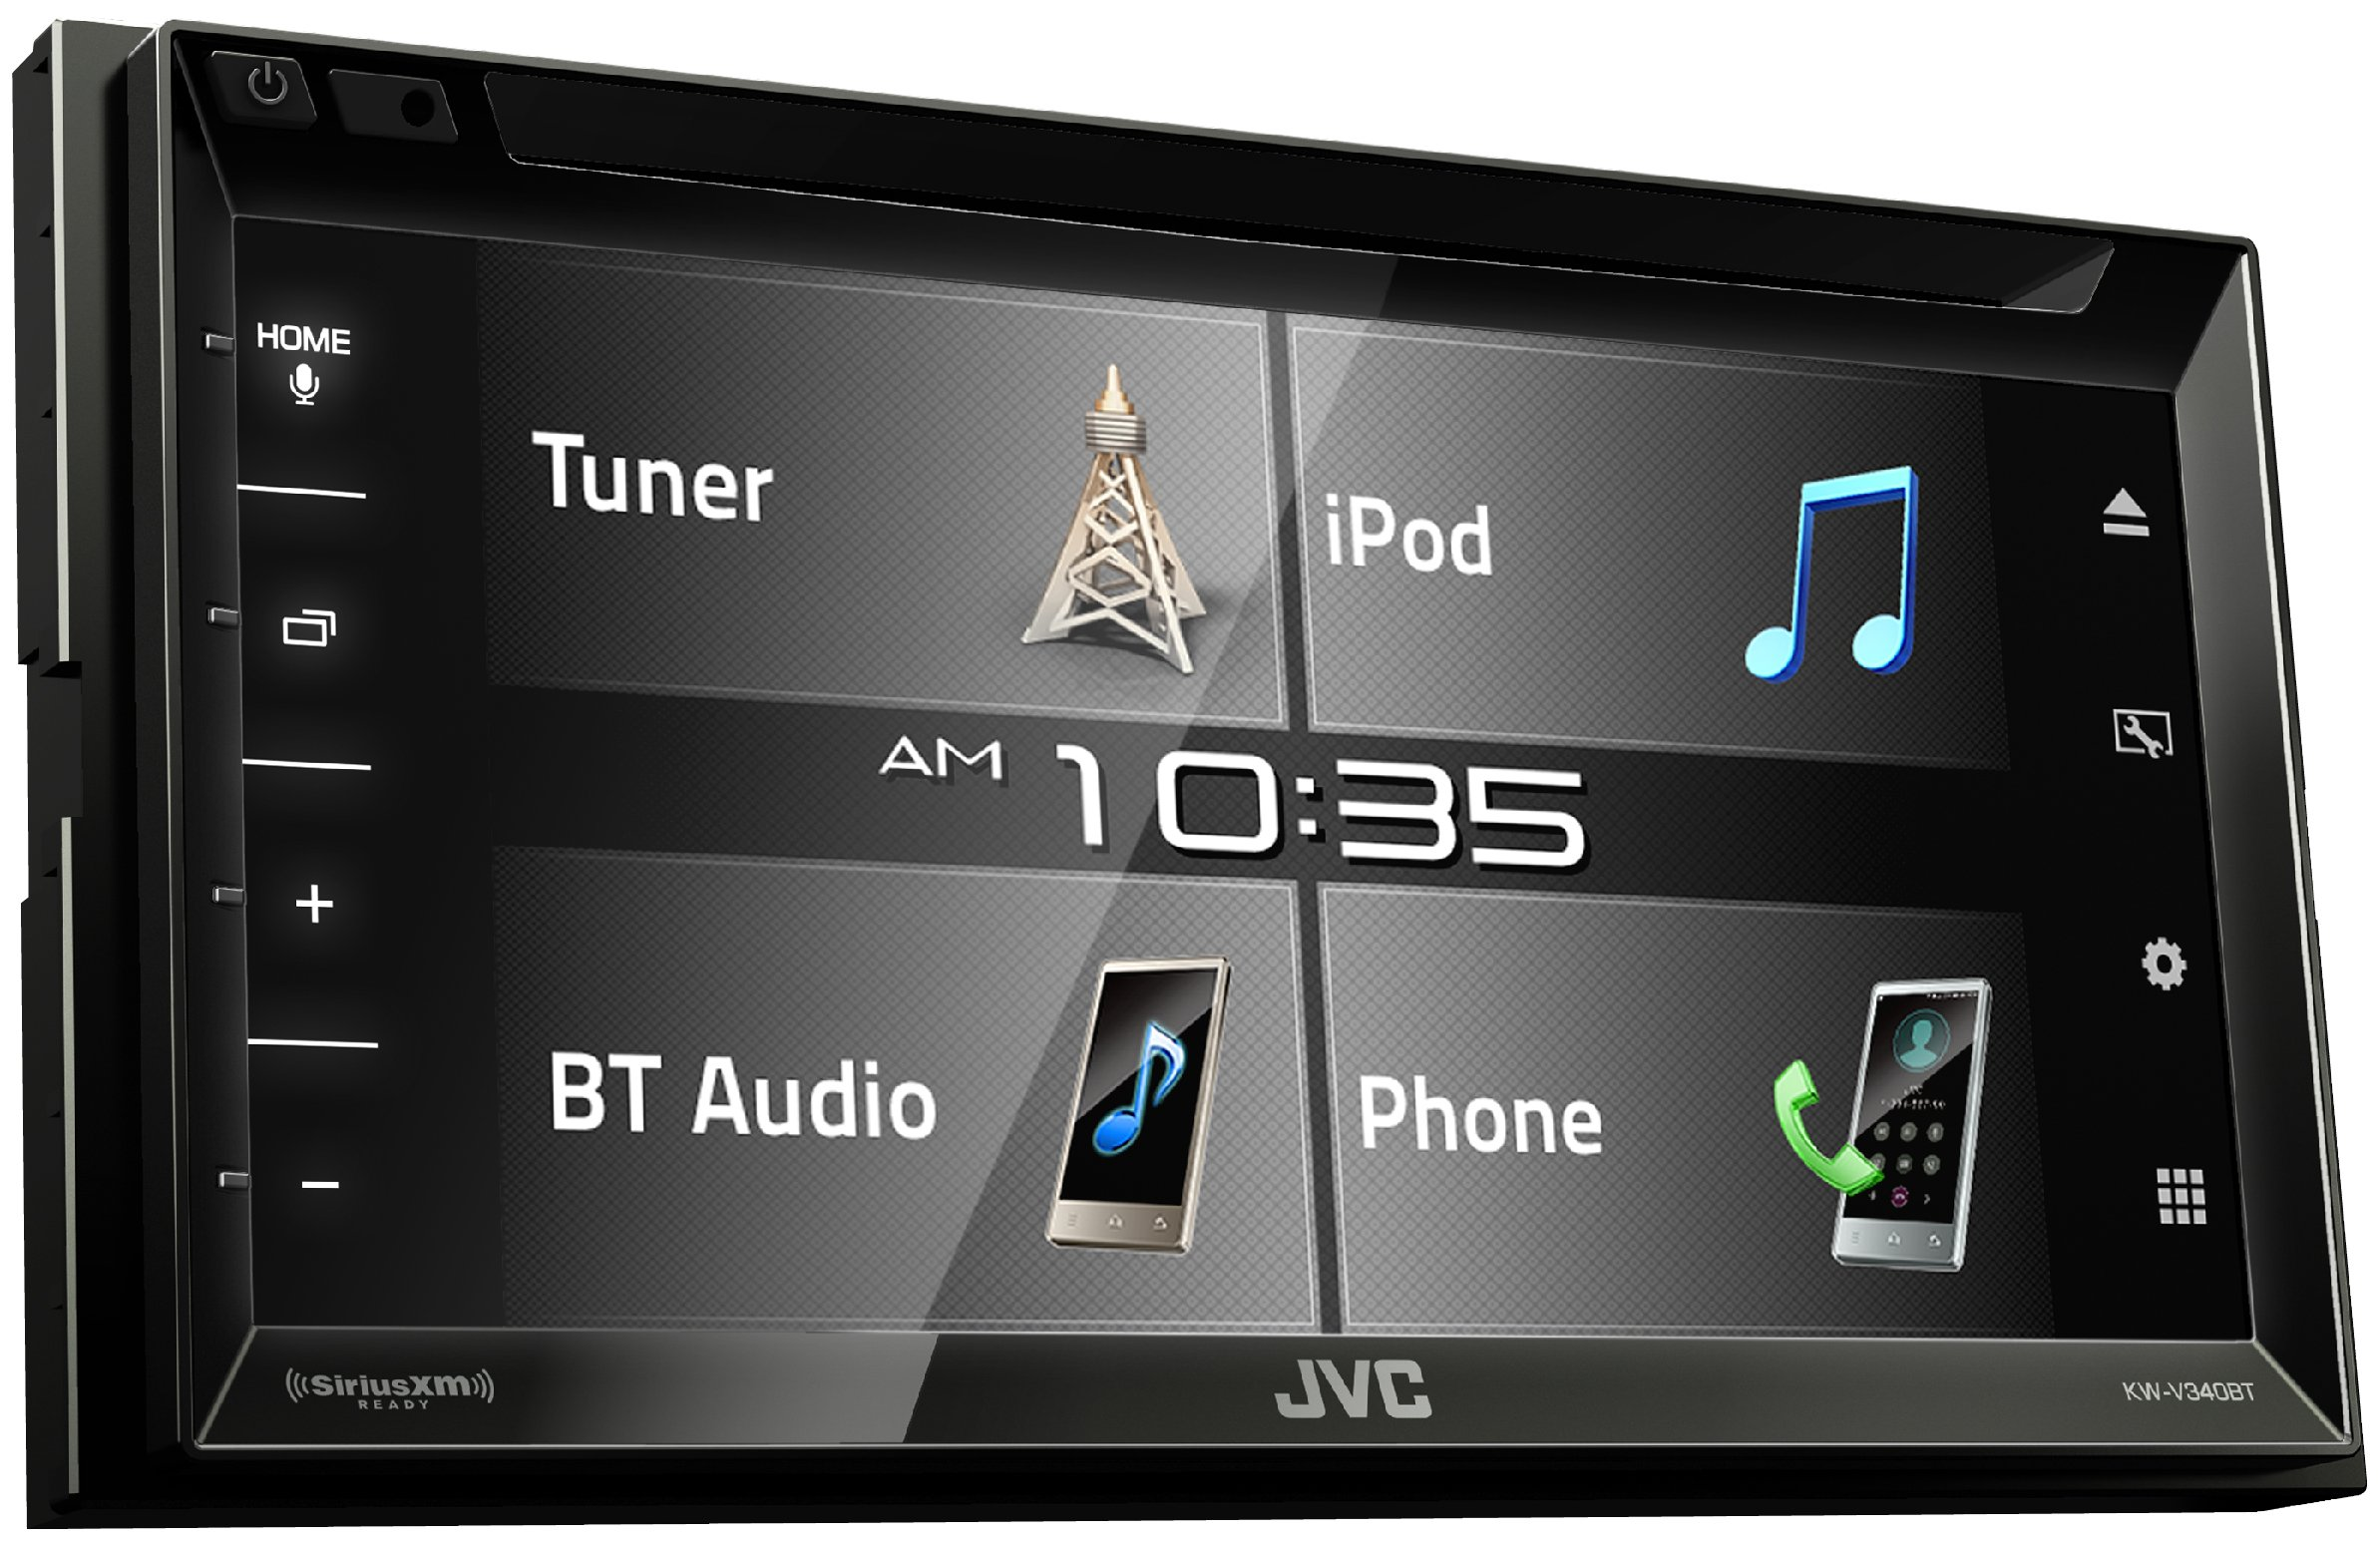 JVC KW-V340BT 6.2-inch Bluetooth DVD/CD/USB WVGA Receiver with 6.8-inch Clear Resistive Touch Control (Renewed) by JVC